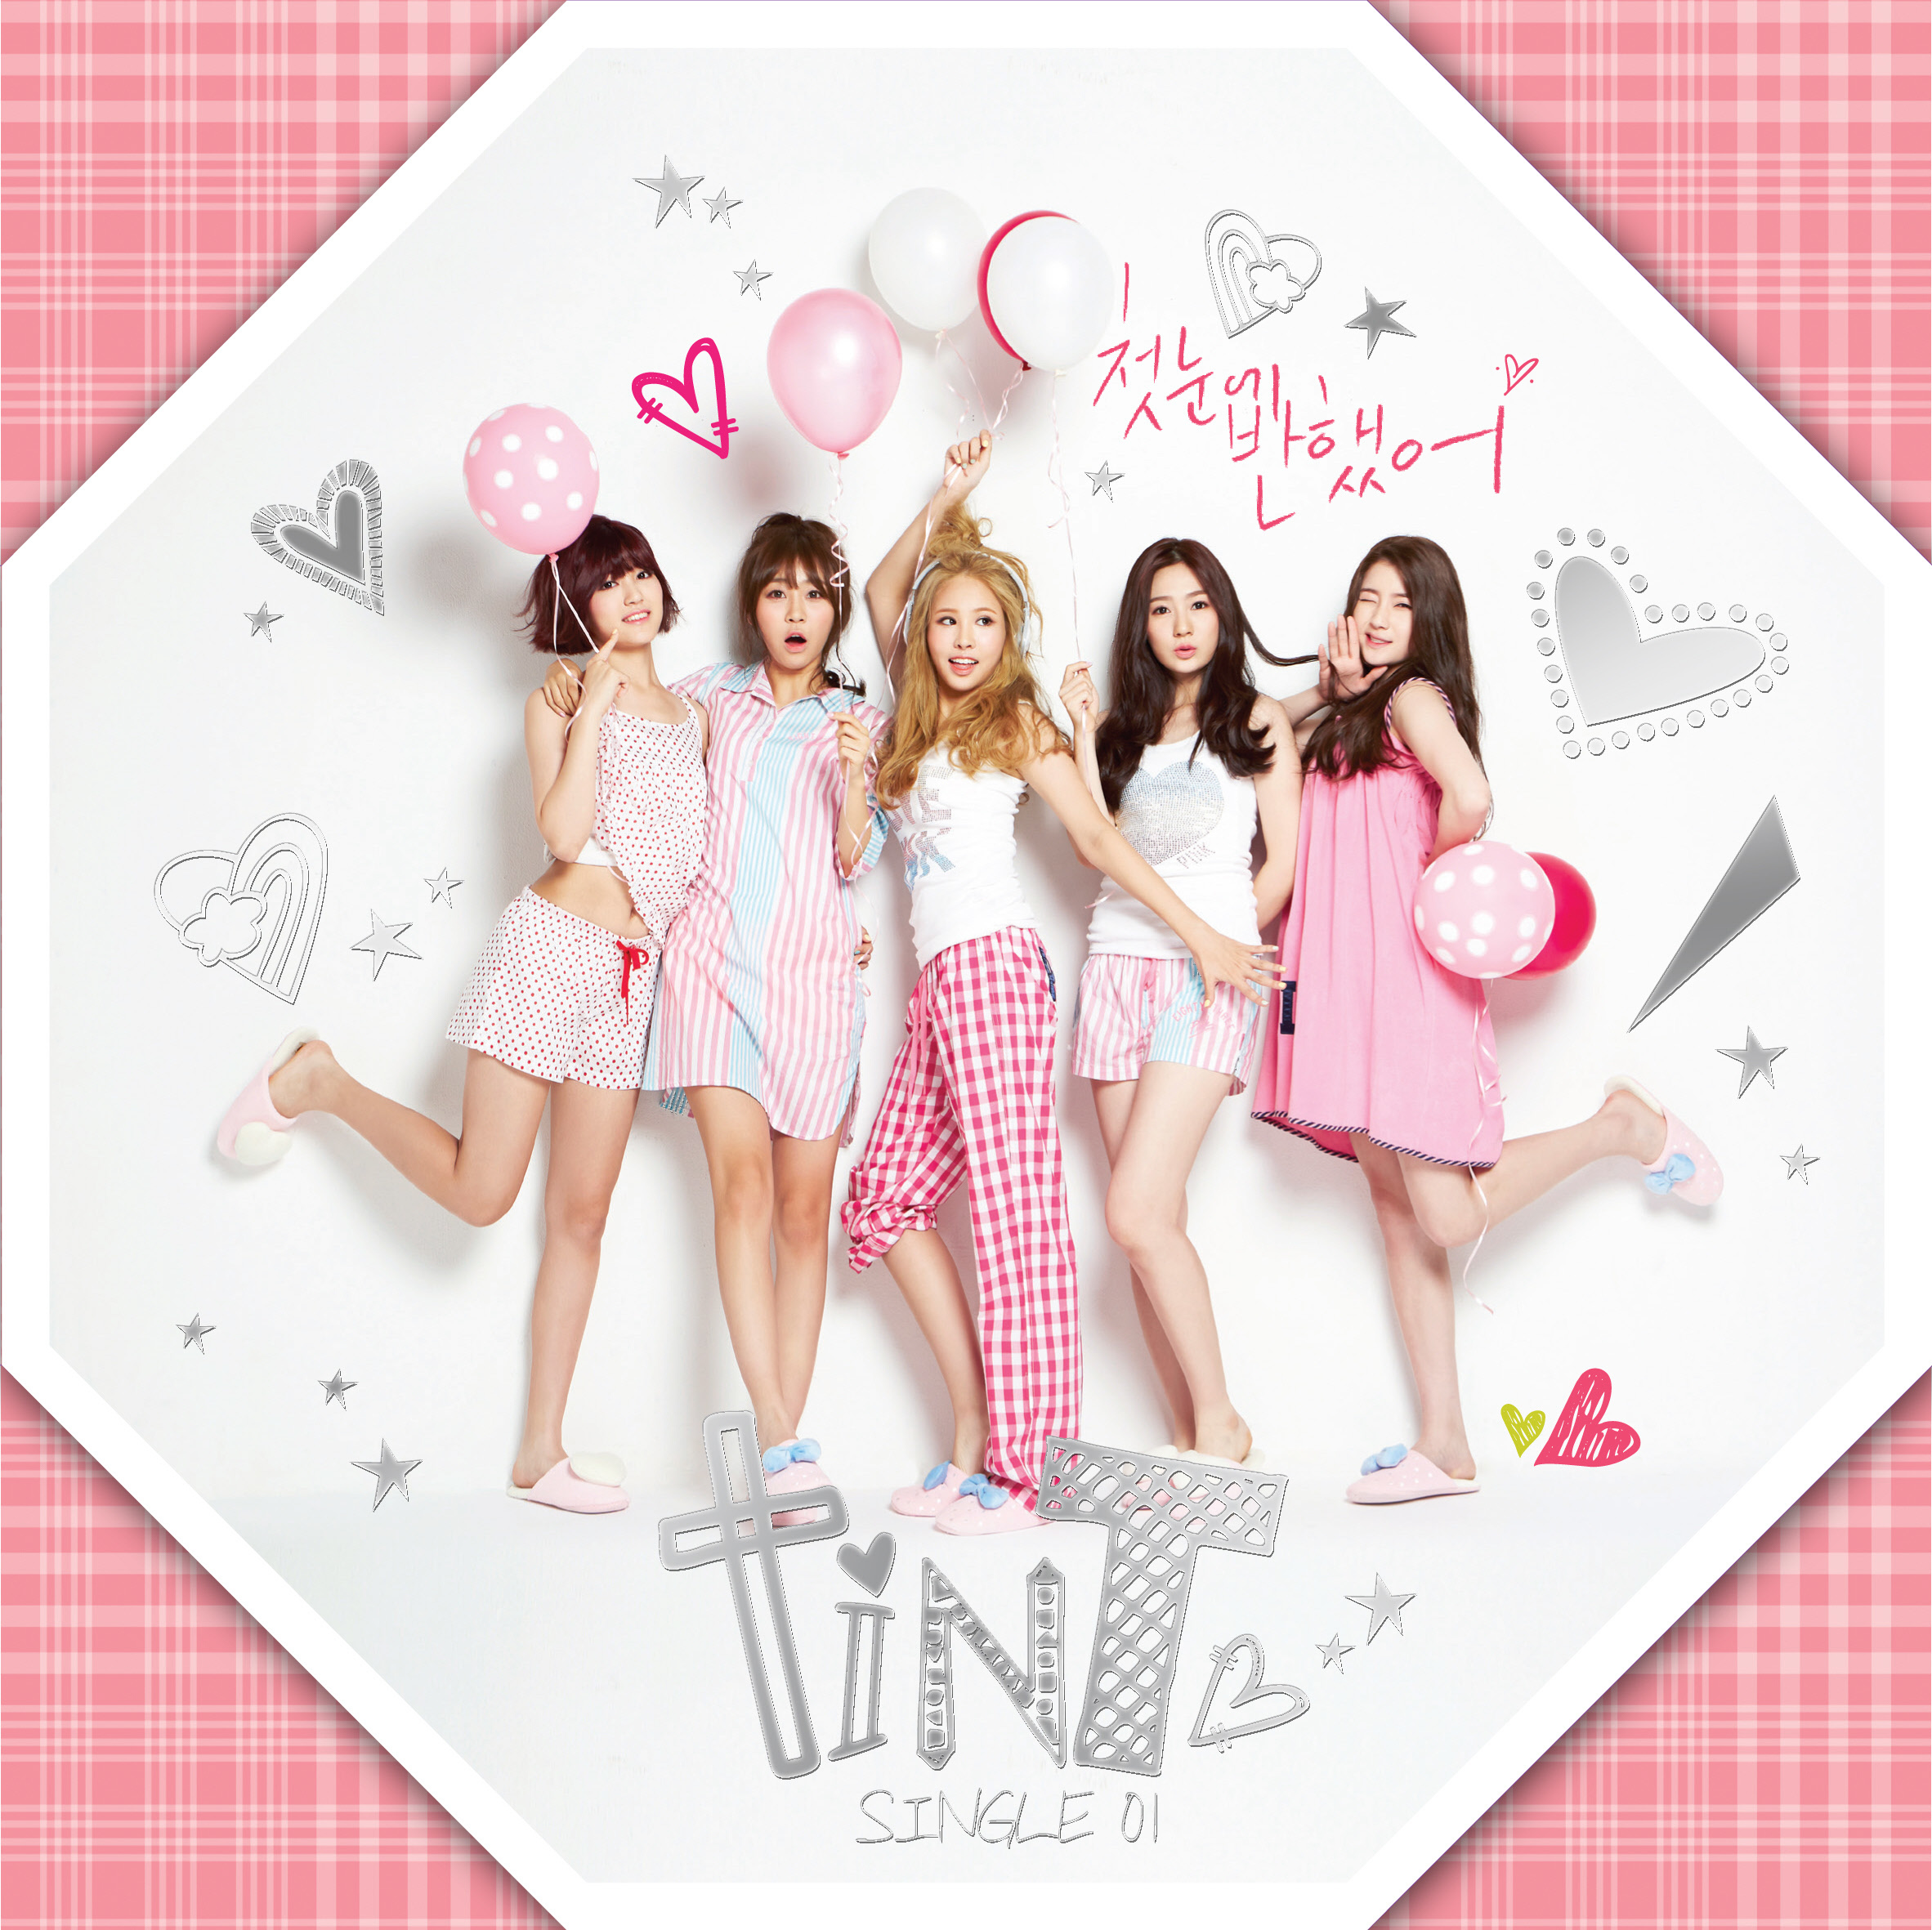 20160727.01.05 TINT - Love At First Sight cover.jpg